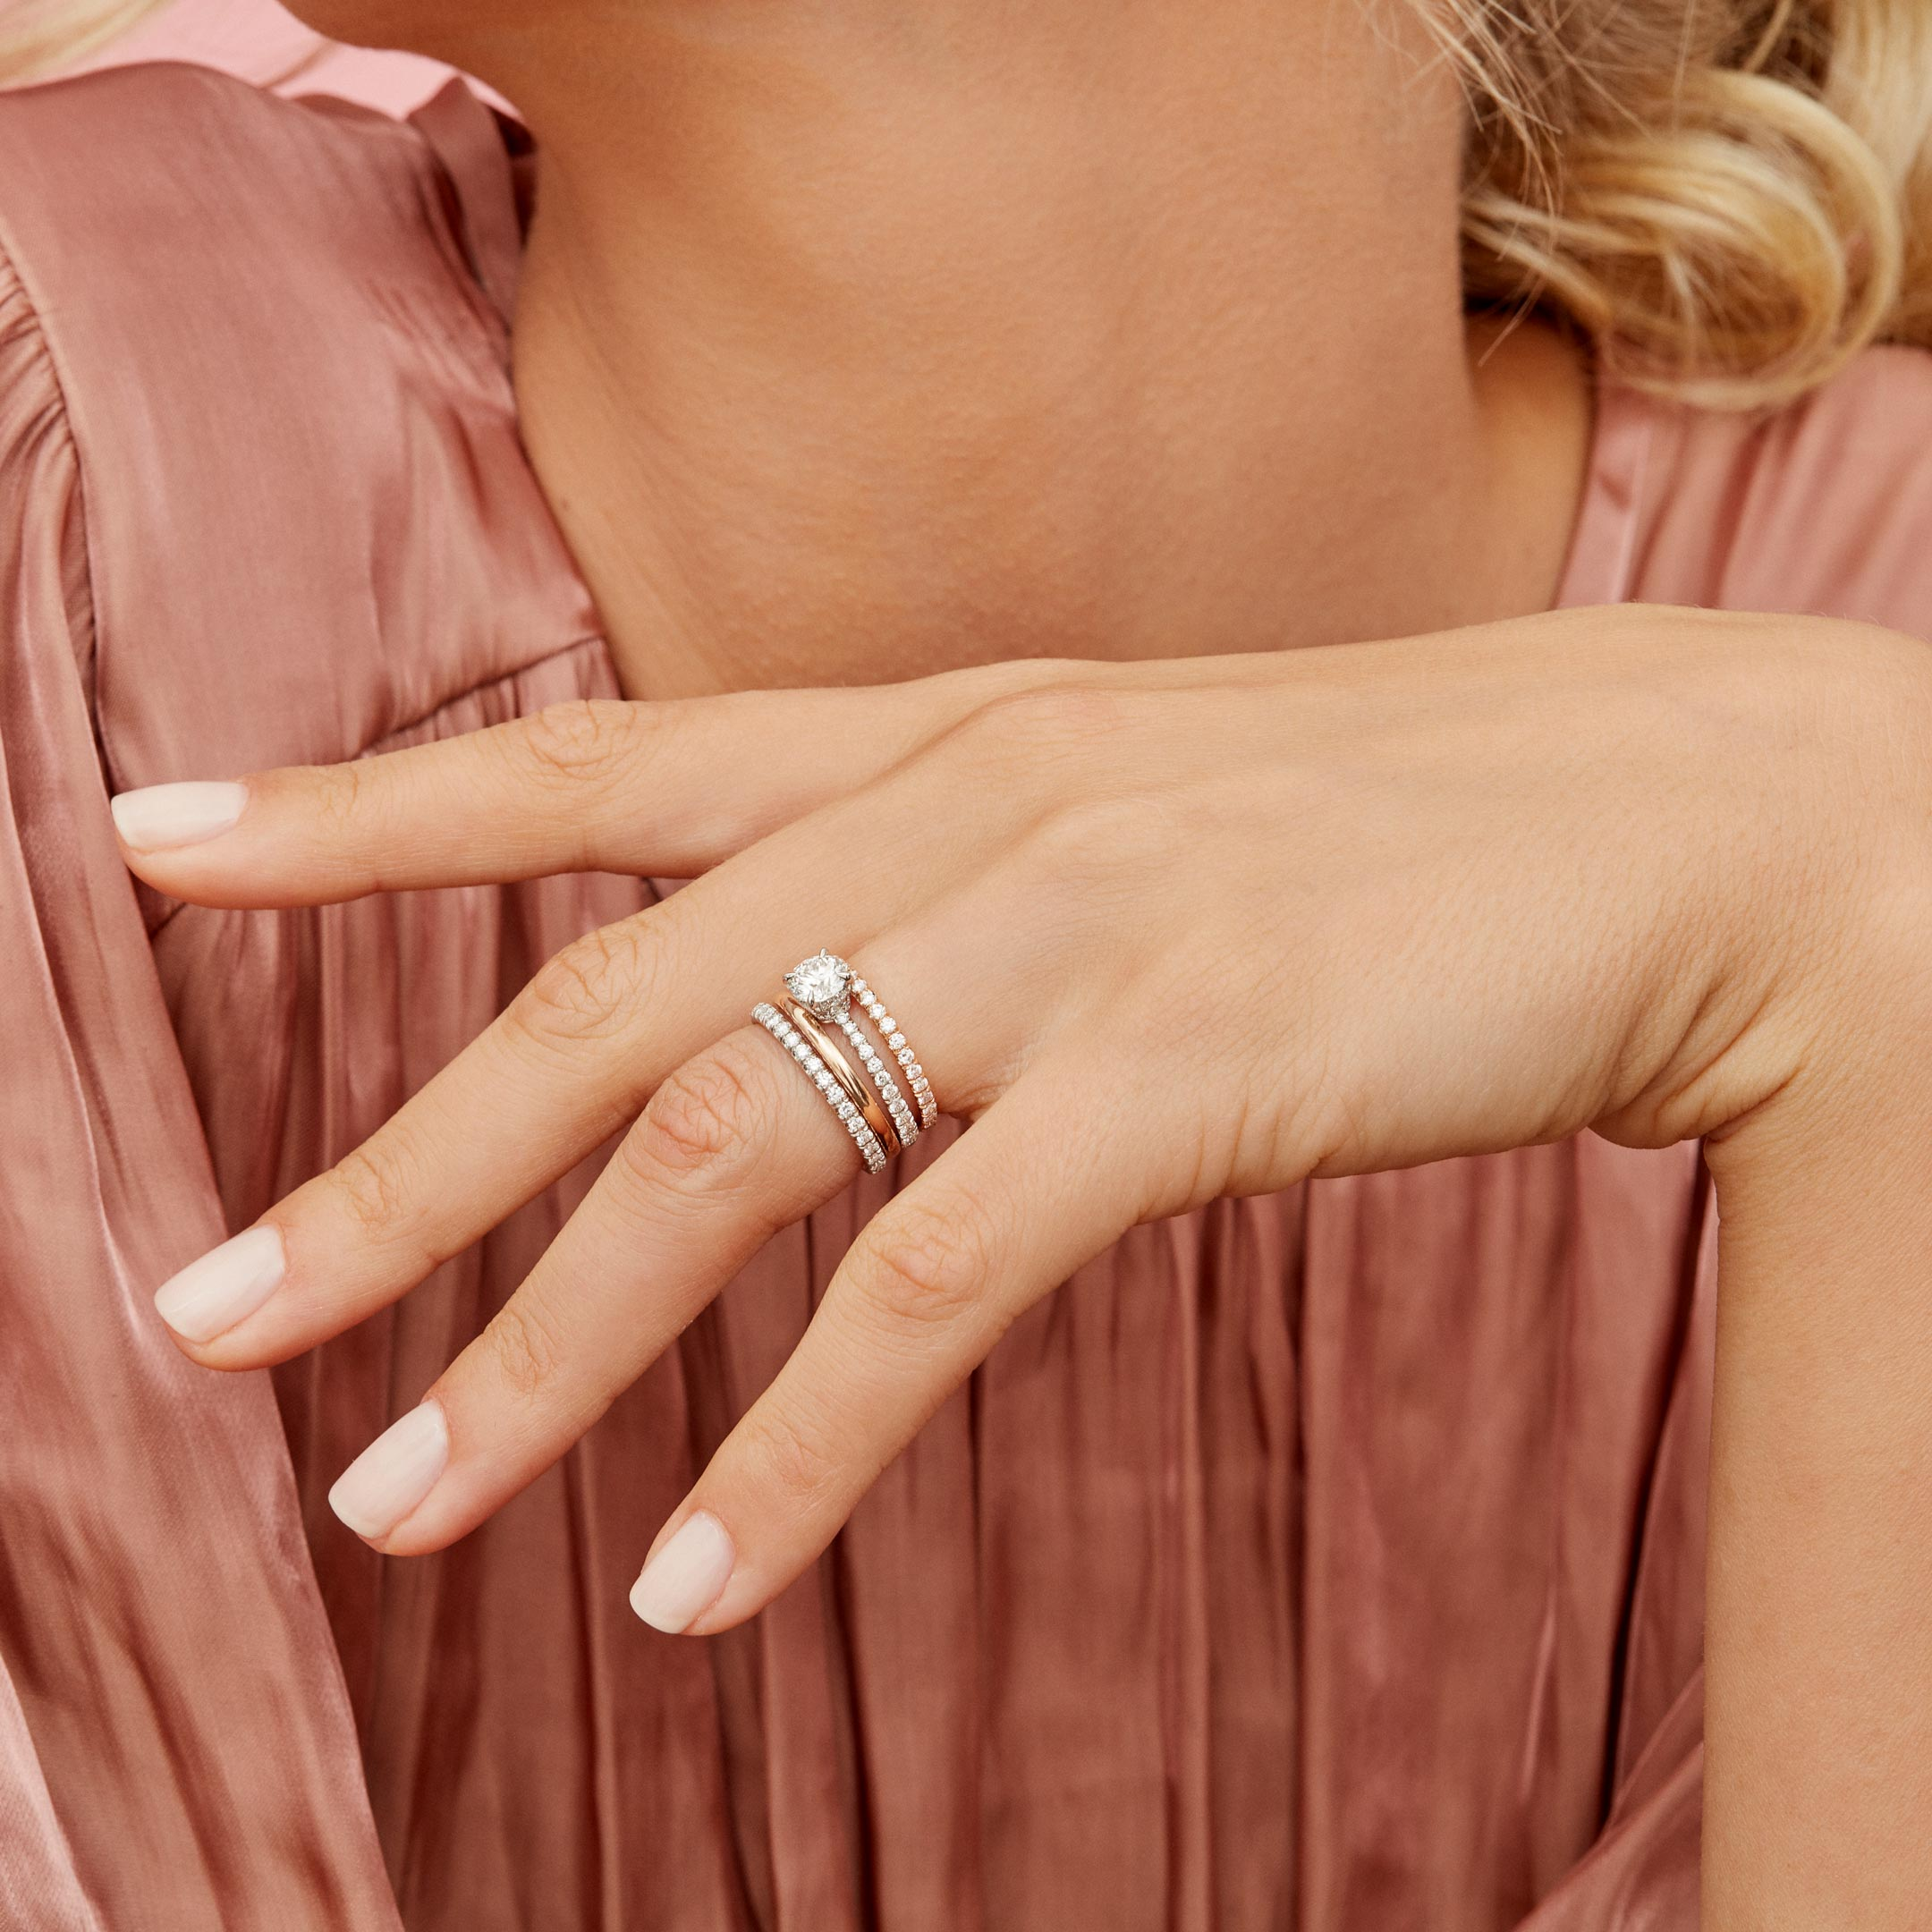 Eloise Round Brilliant Solitaire Engagement Ring with a diamond pavé band in Platinum Hand Against Model Lifestyle by Oui by Jean Dousset